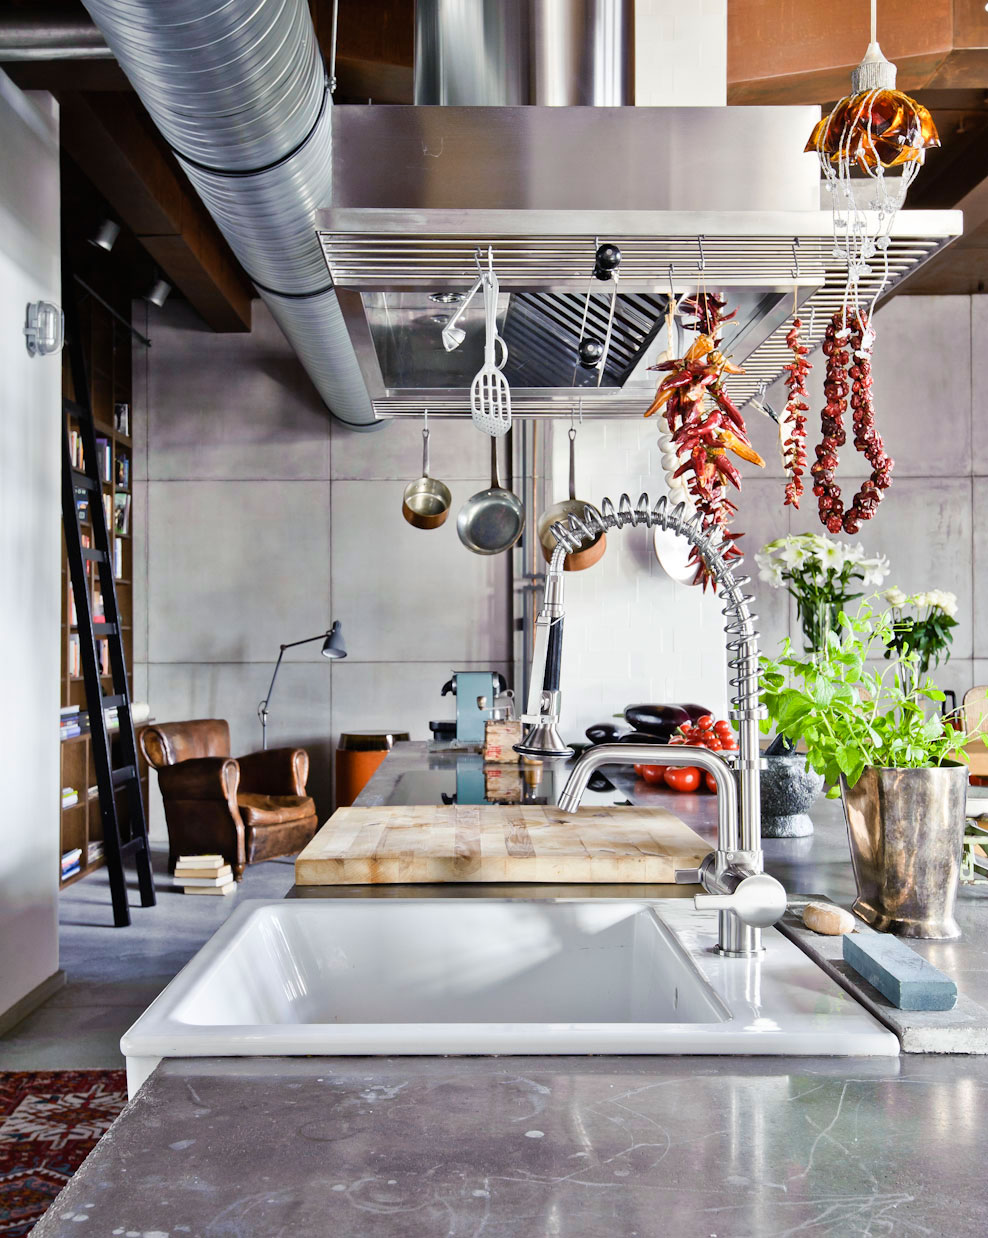 eclectic-loft-apartment-budapest-shay-sabag-kitchen-sink